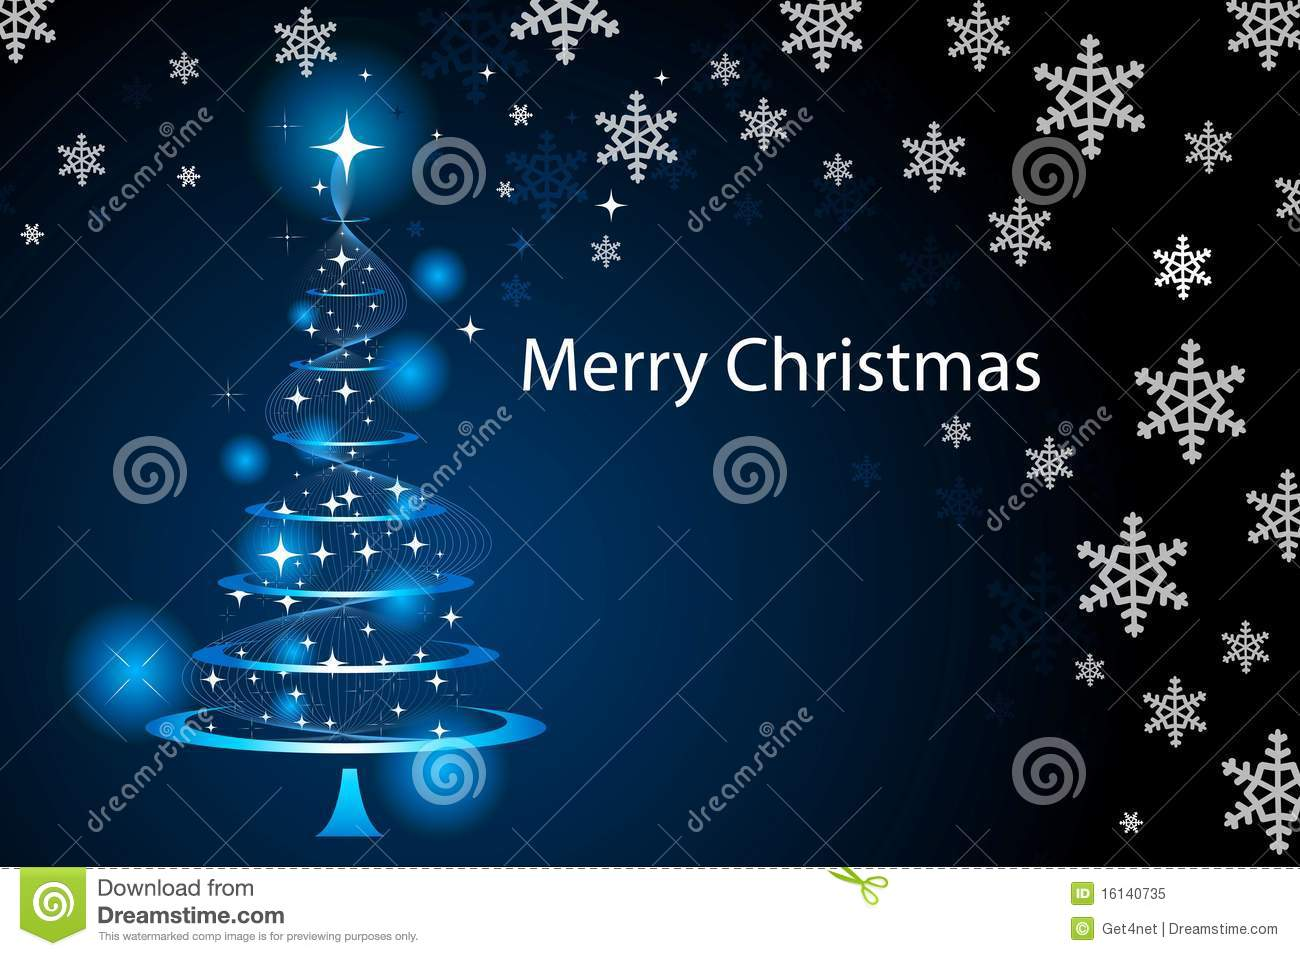 merry christmas wallpaper stock illustration. illustration of flake